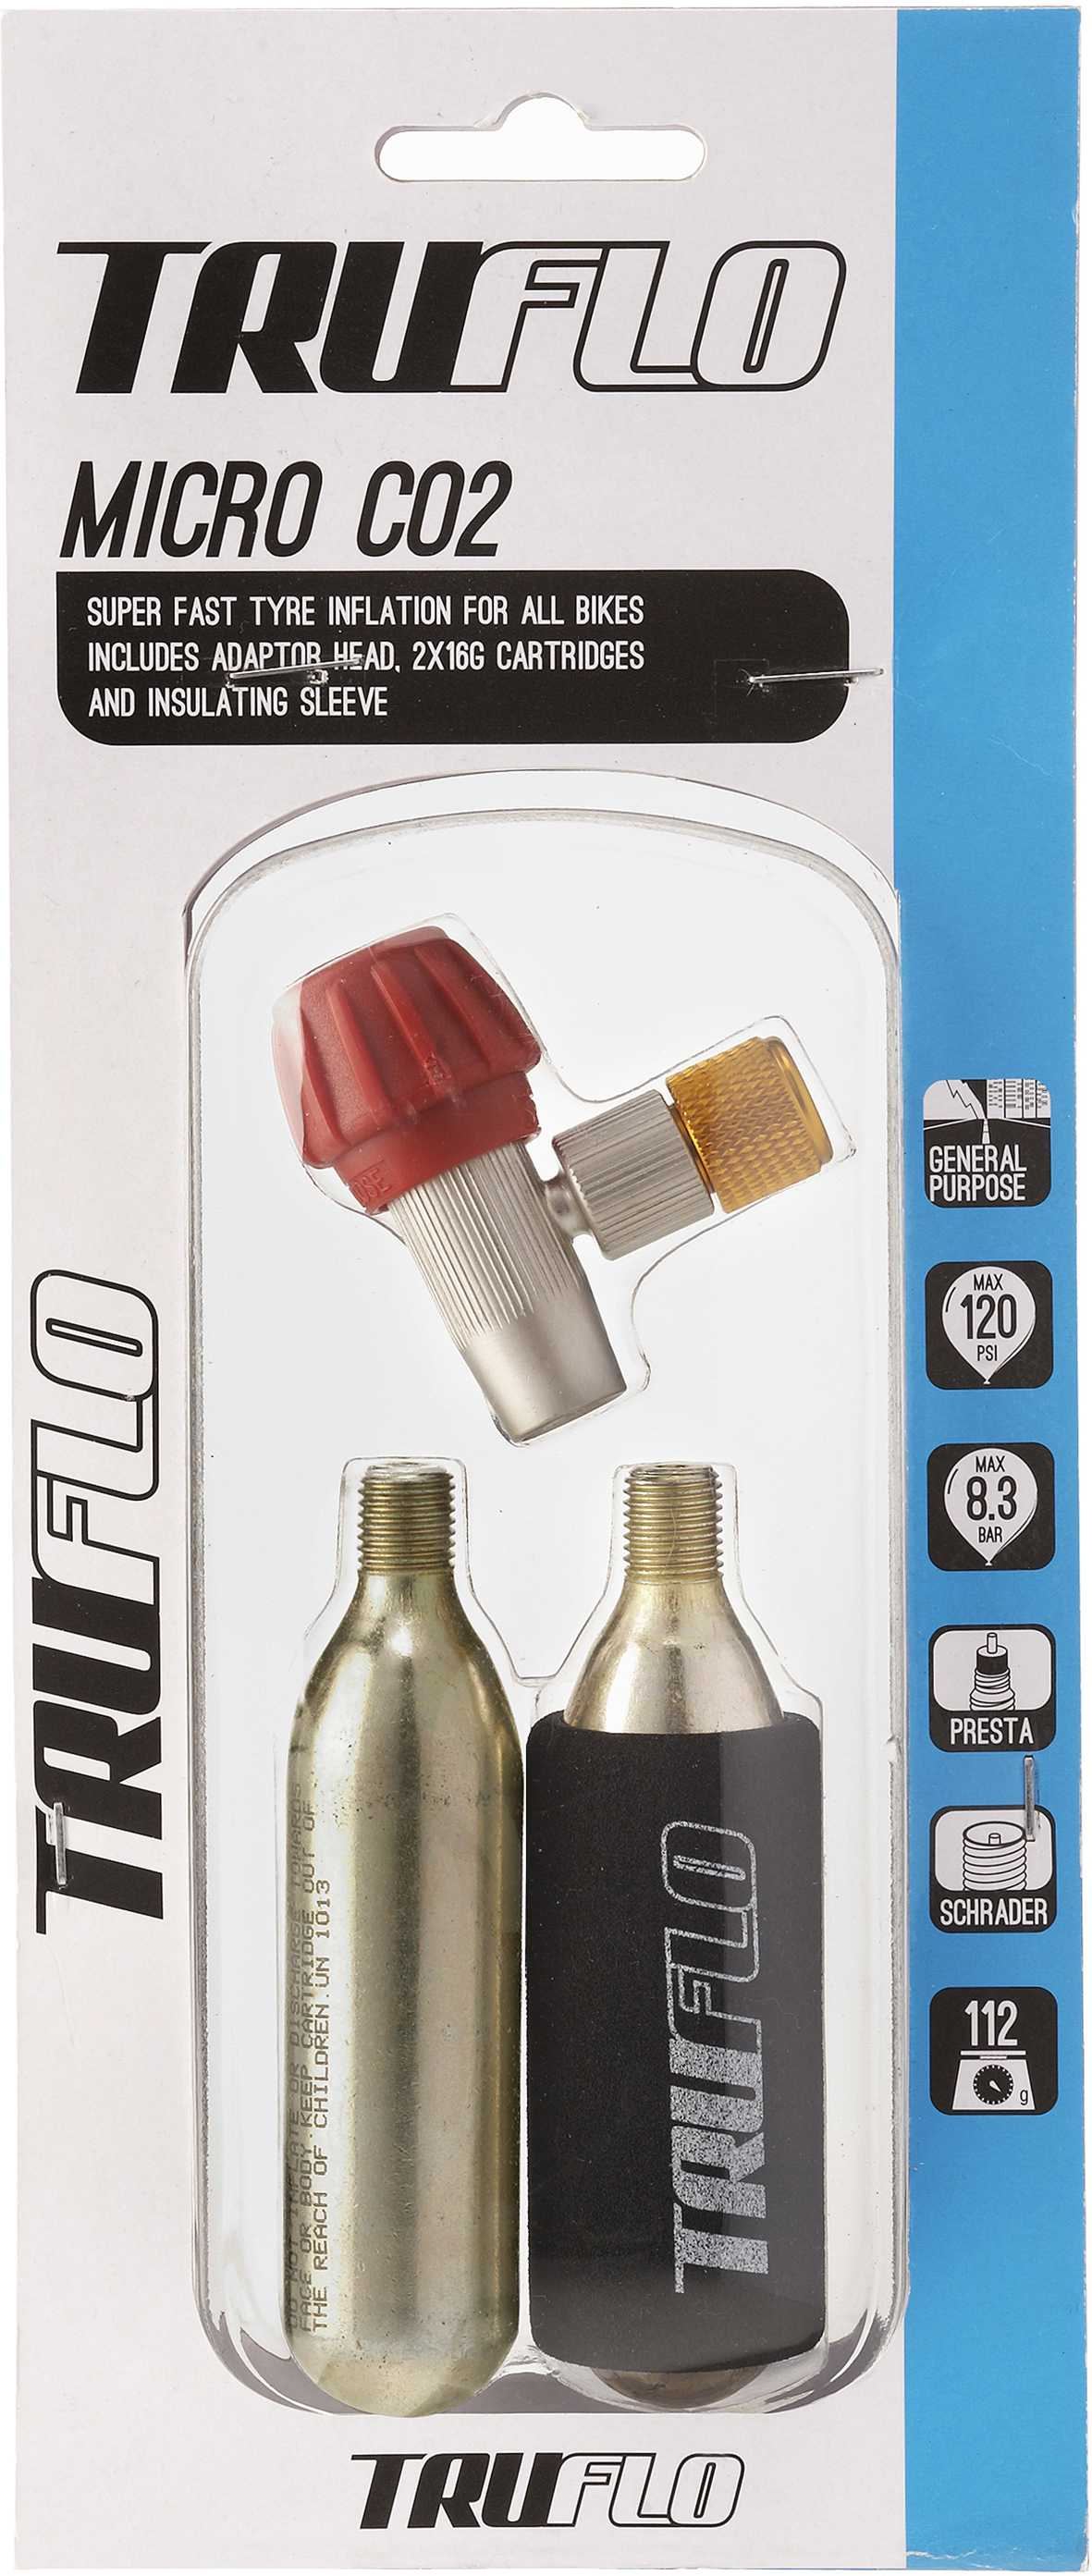 Truflo Micro C02 Inflator with 2 Cartridges